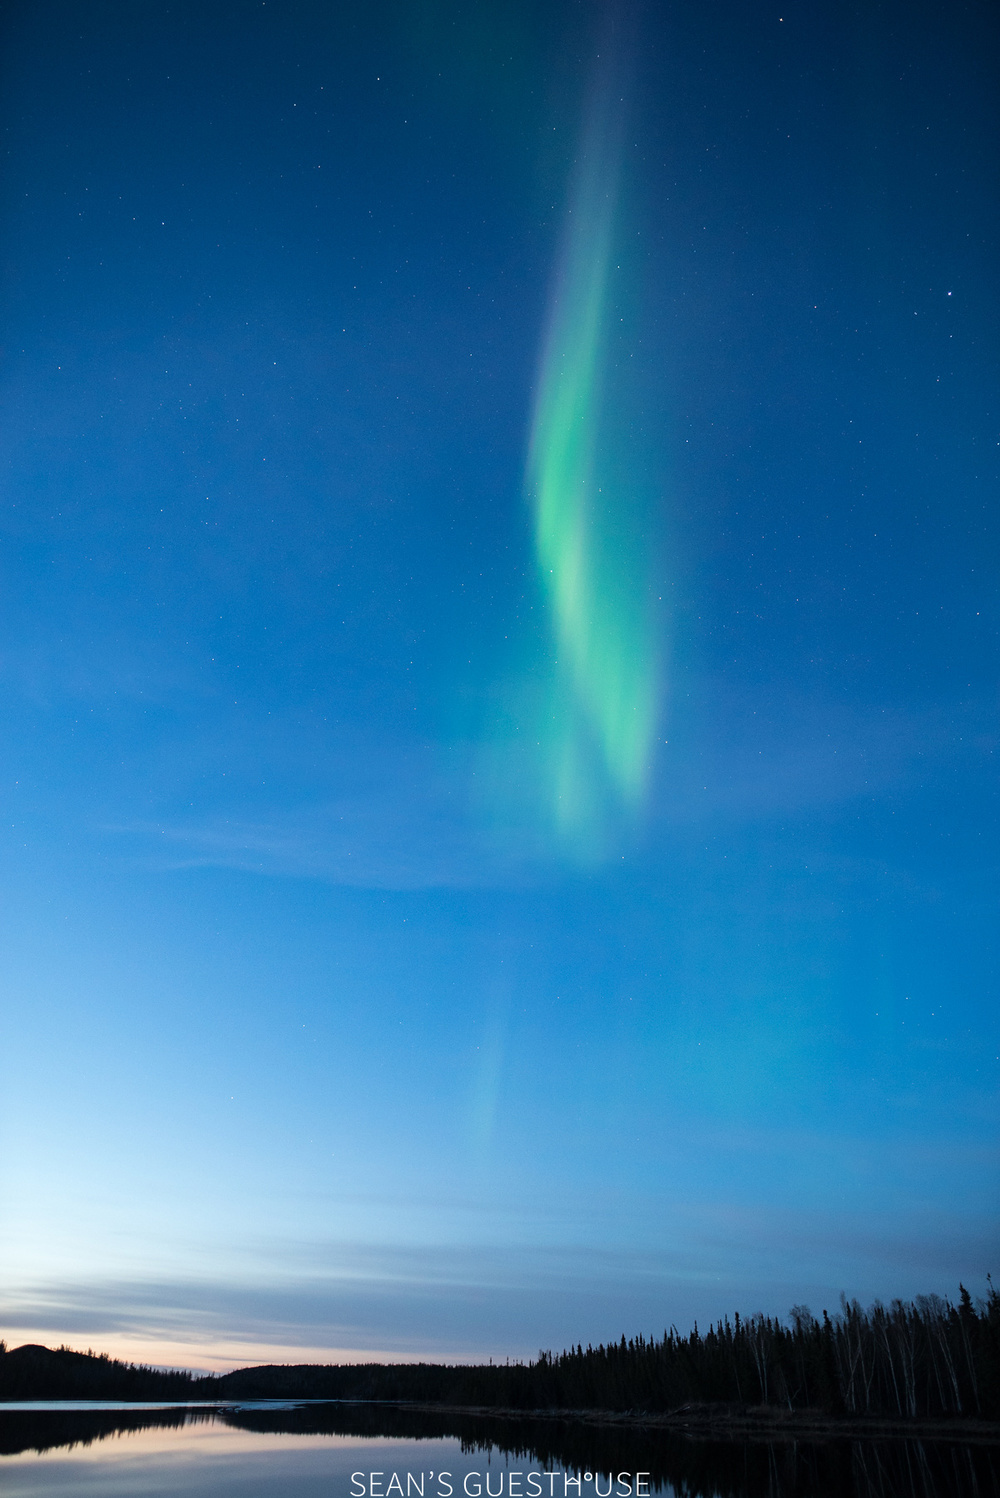 Sean's Guesthouse - Best Place to see the northern lights - Yellowknife Accommodation - 2.jpg